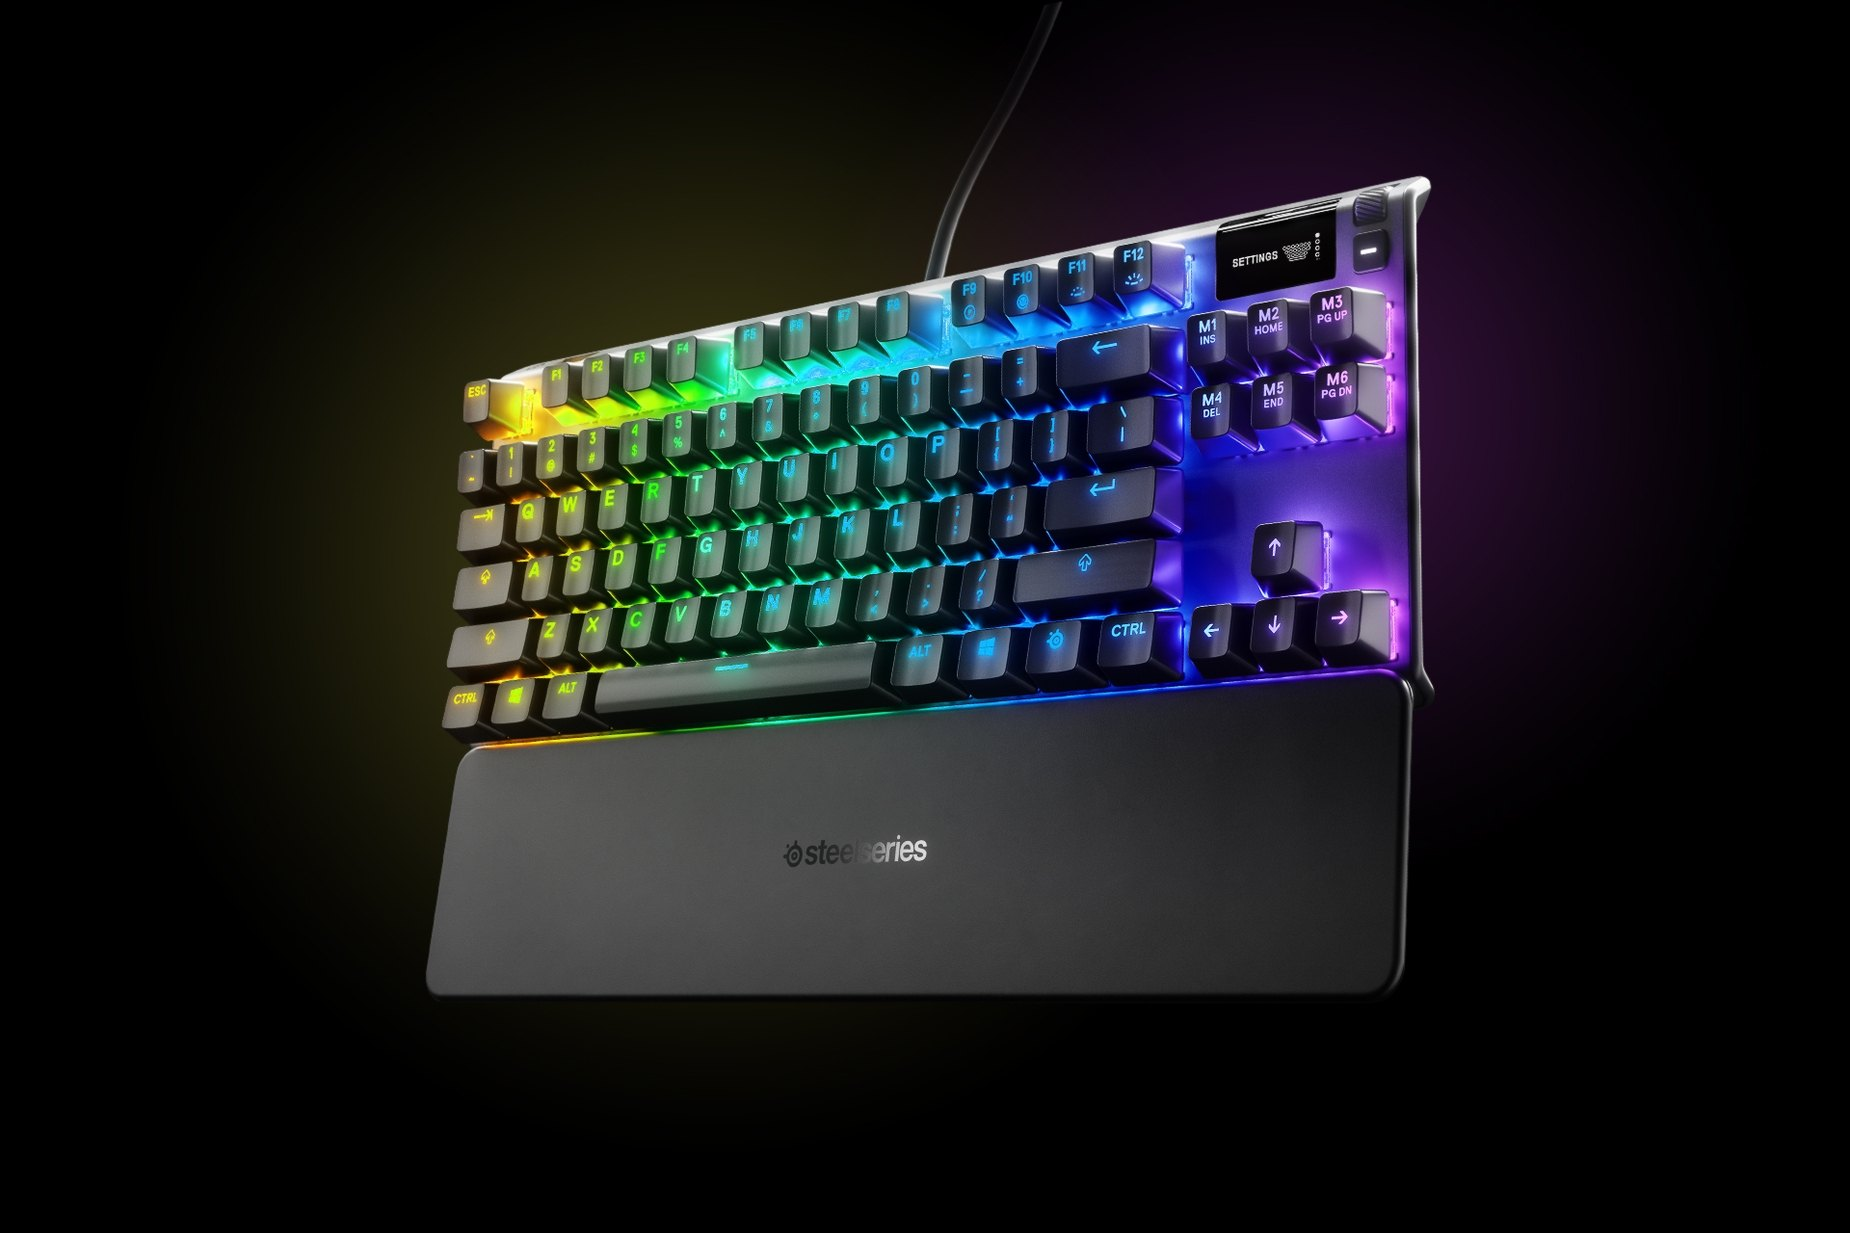 Nordik - Apex 7 TKL (Kırmızı Anahtar) gaming keyboard with the illumination lit up on dark background, also shows the OLED screen and controls used to change settings and adjust audio